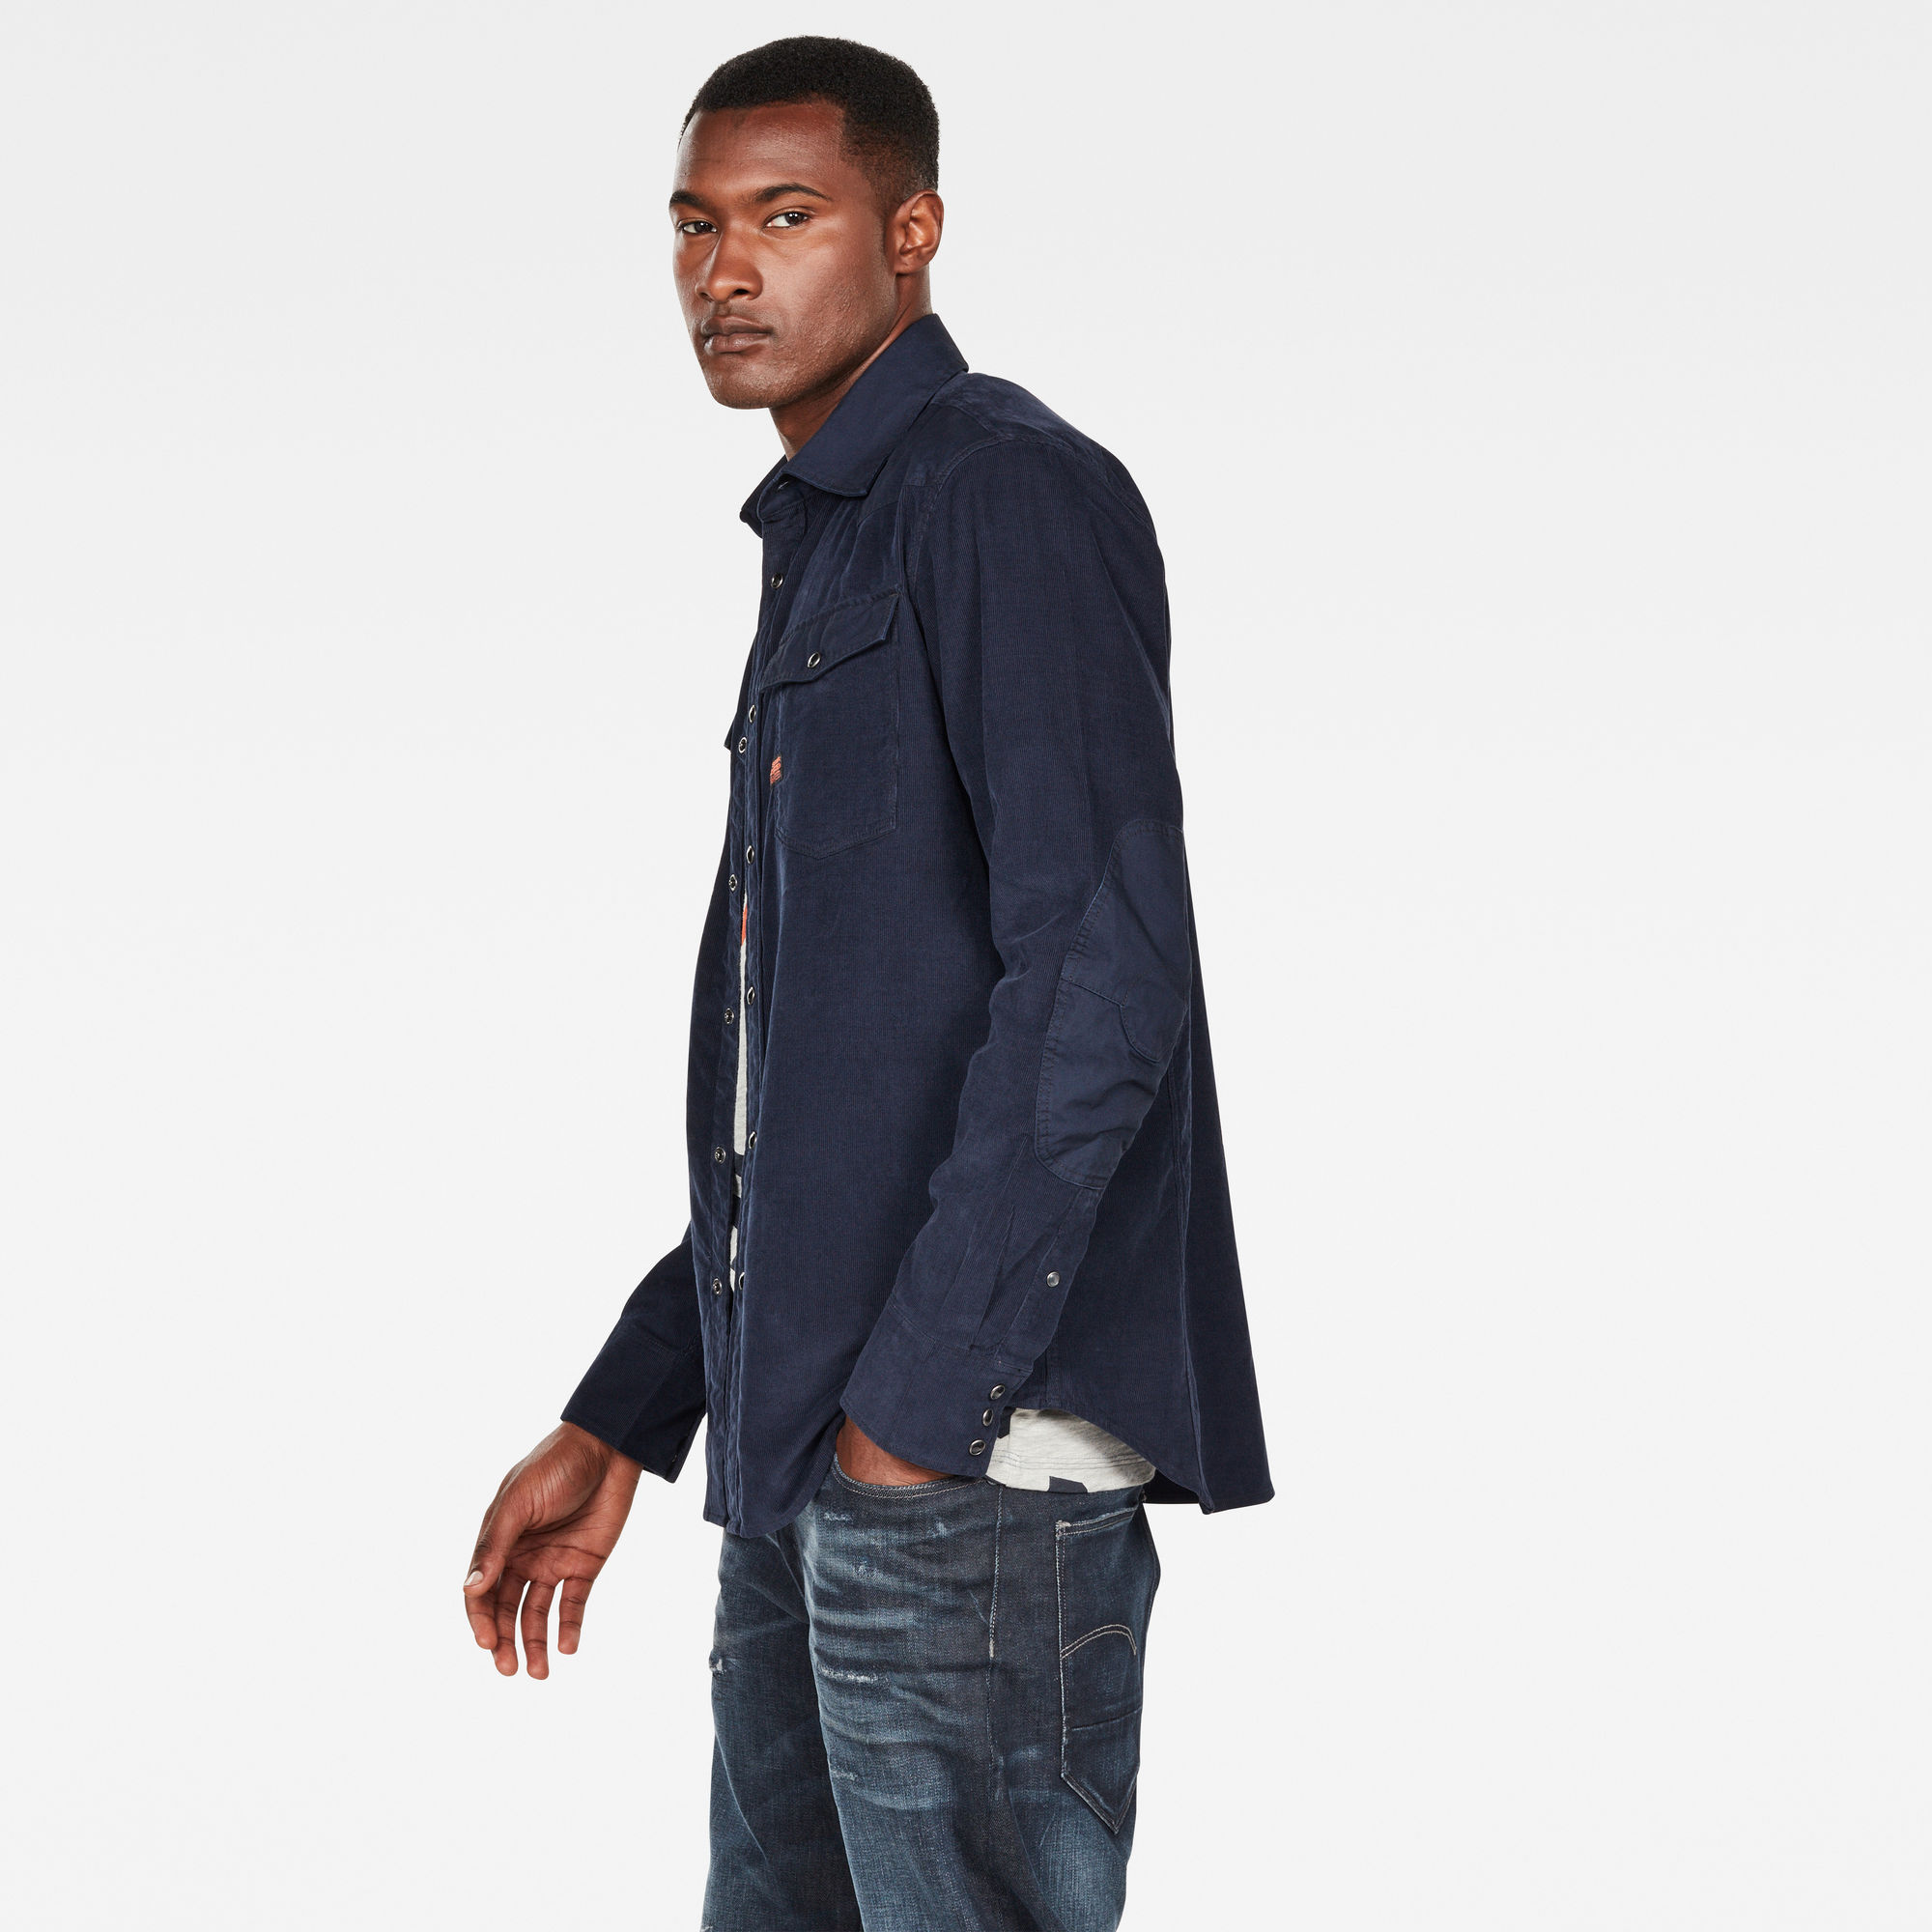 G-Star RAW MAXRAW III 3301 Slim Shirt